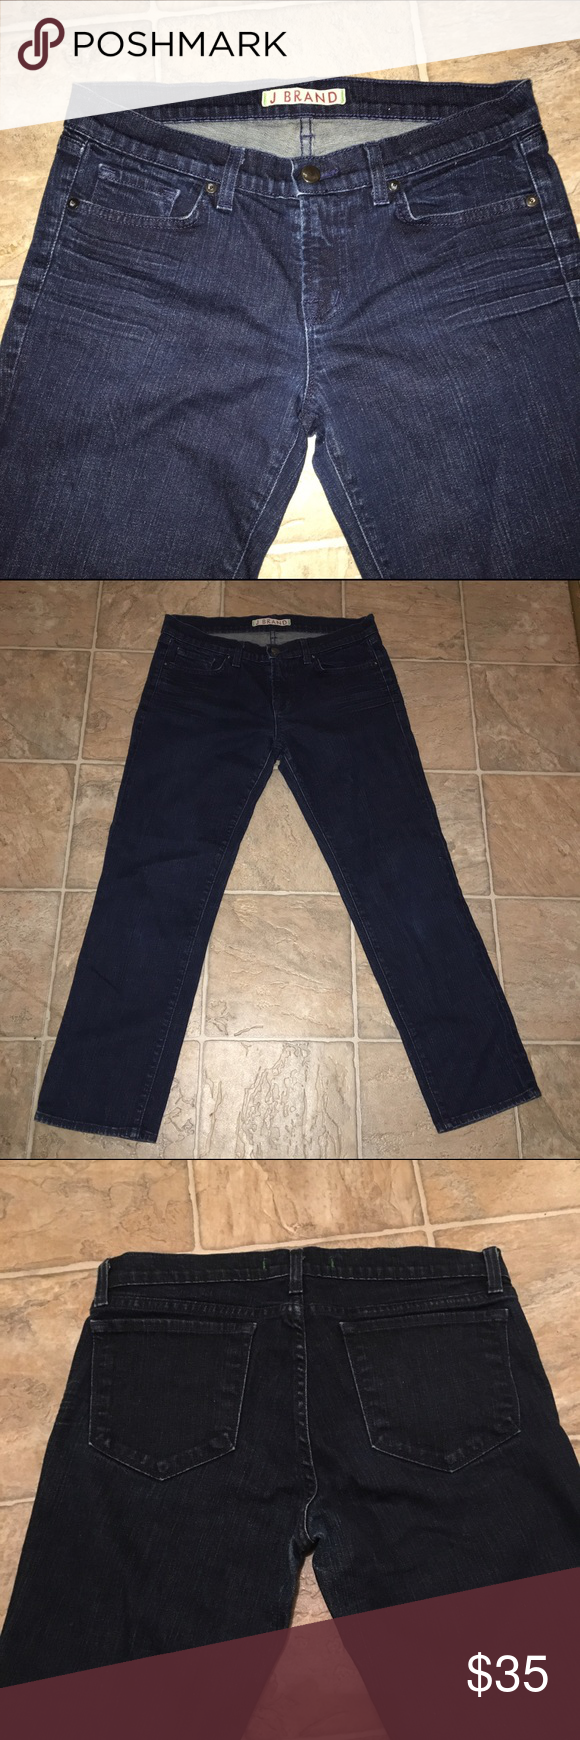 "J Brand Baby Boot Cropped Jeans 26.5""  inseam for a cute cropped look, perfect paired with your favorite slip-ons or sneakers! 7"" leg opening, 2% lycra for some stretch. waist measures 16"" J Brand Jeans Ankle & Cropped"